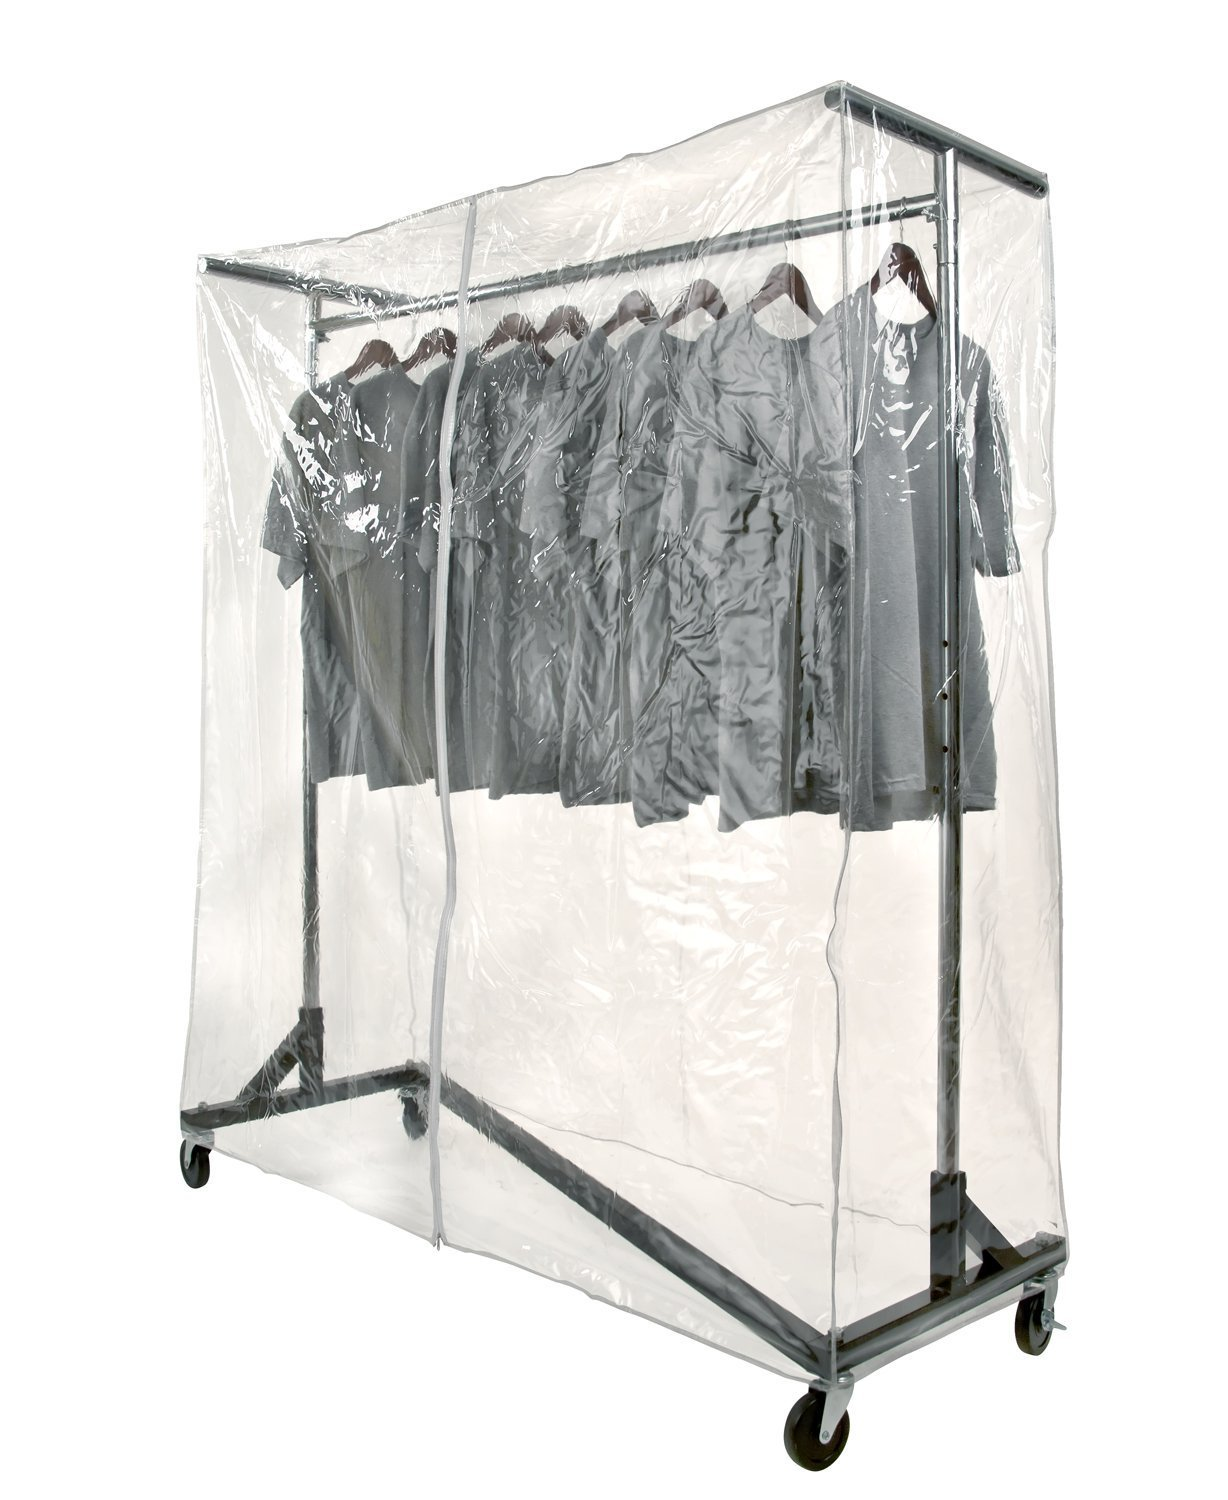 Only Garment Racks SN-022CH + SH102 Clear Z Rack Cover with Support Bars (Rack Sold Separately)